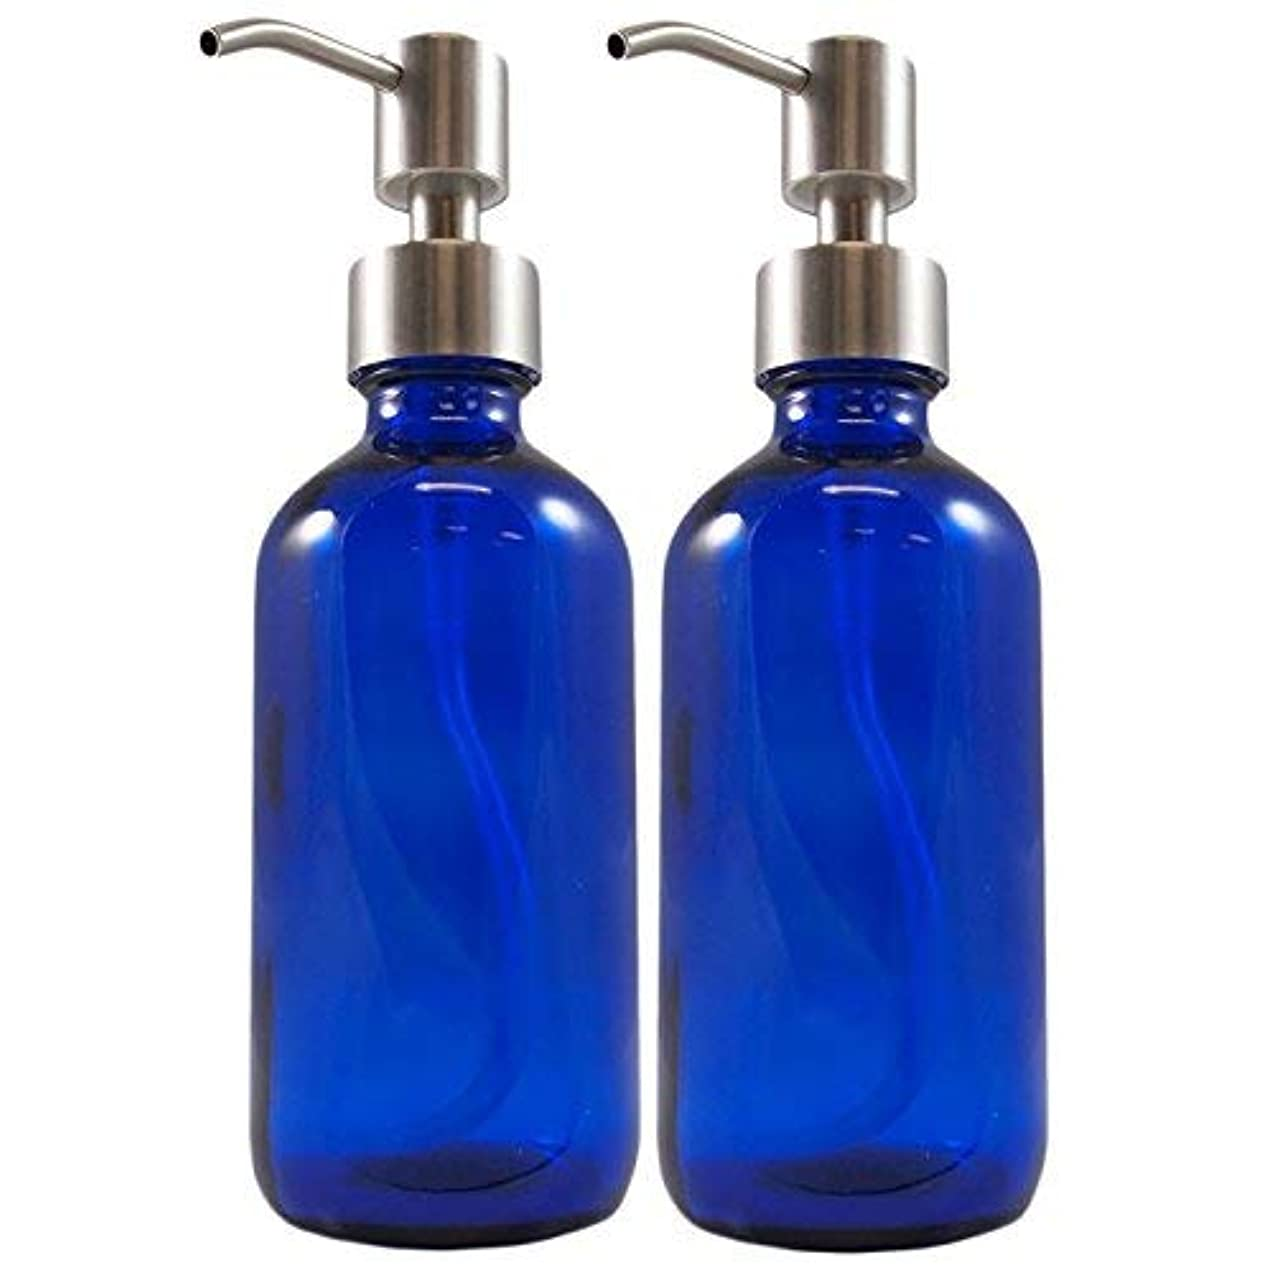 Cornucopia Brands Cobalt Blue Glass Boston Round Bottles with Stainless Steel Pumps, Great for Essential Oils,...